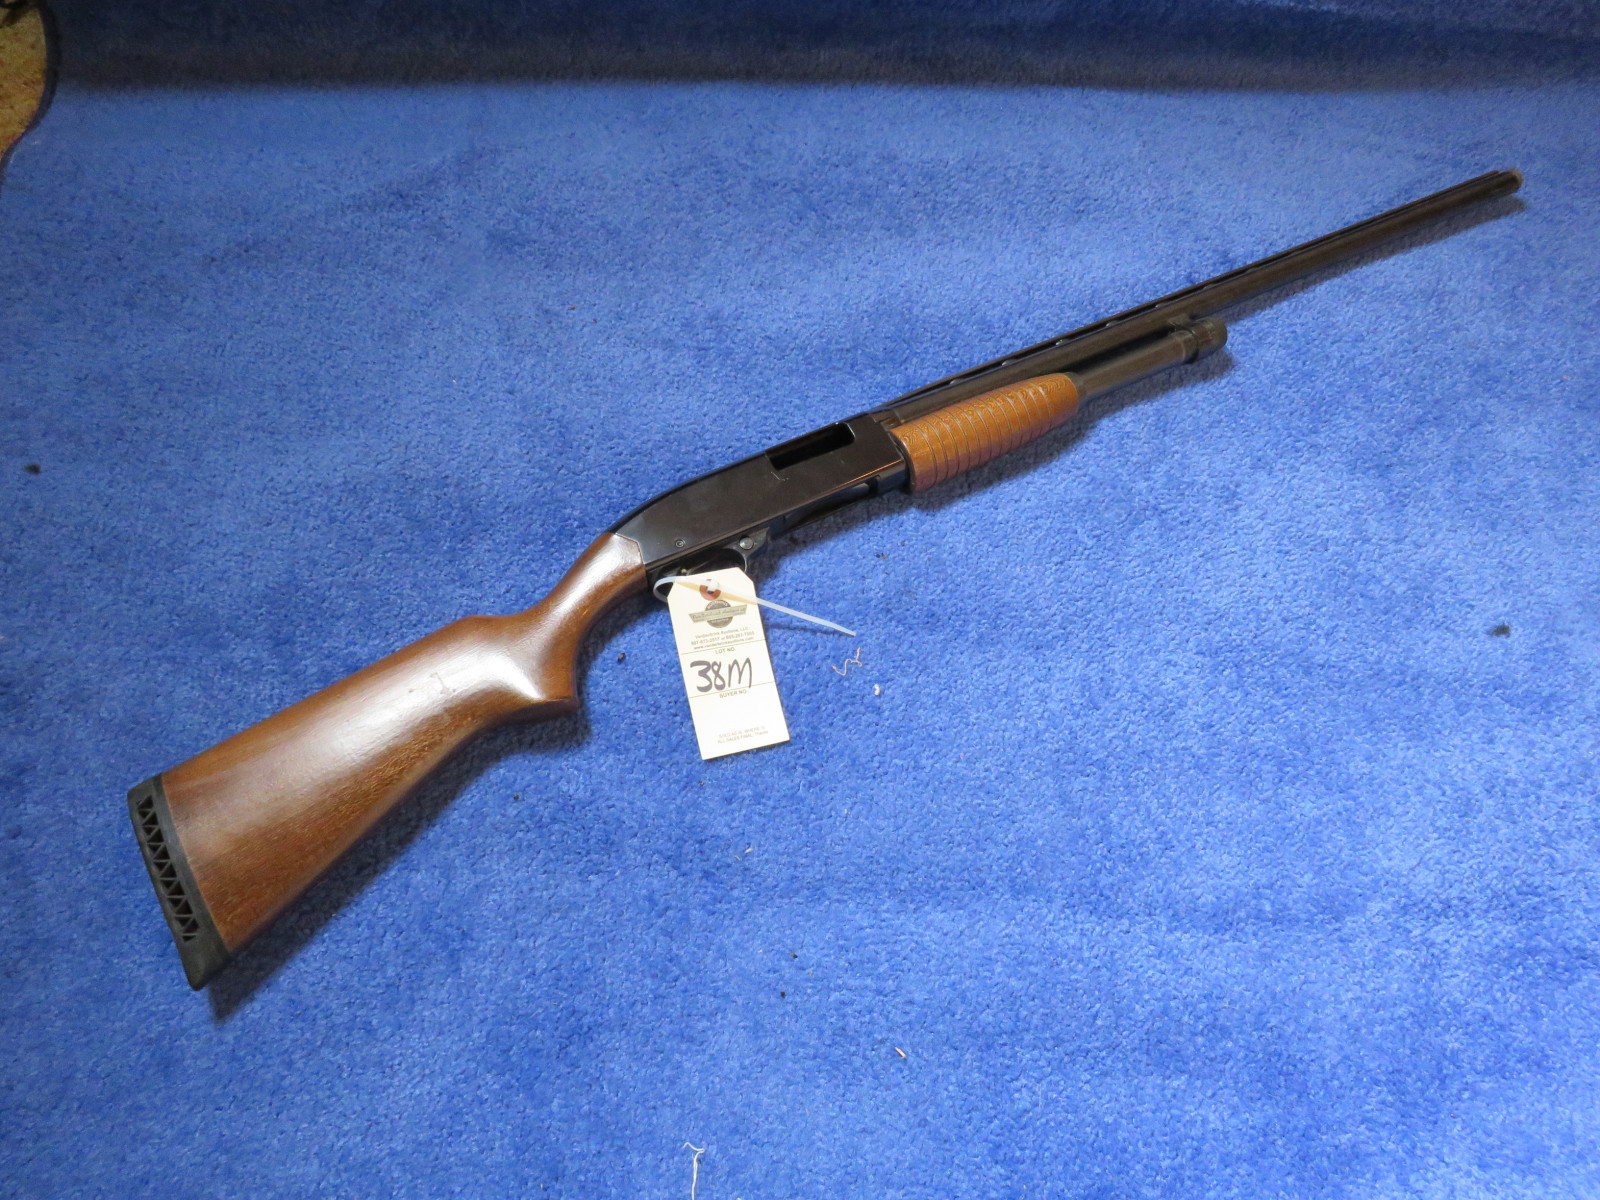 Winchester Model 120 12 Gauge Shotgun - Image 1